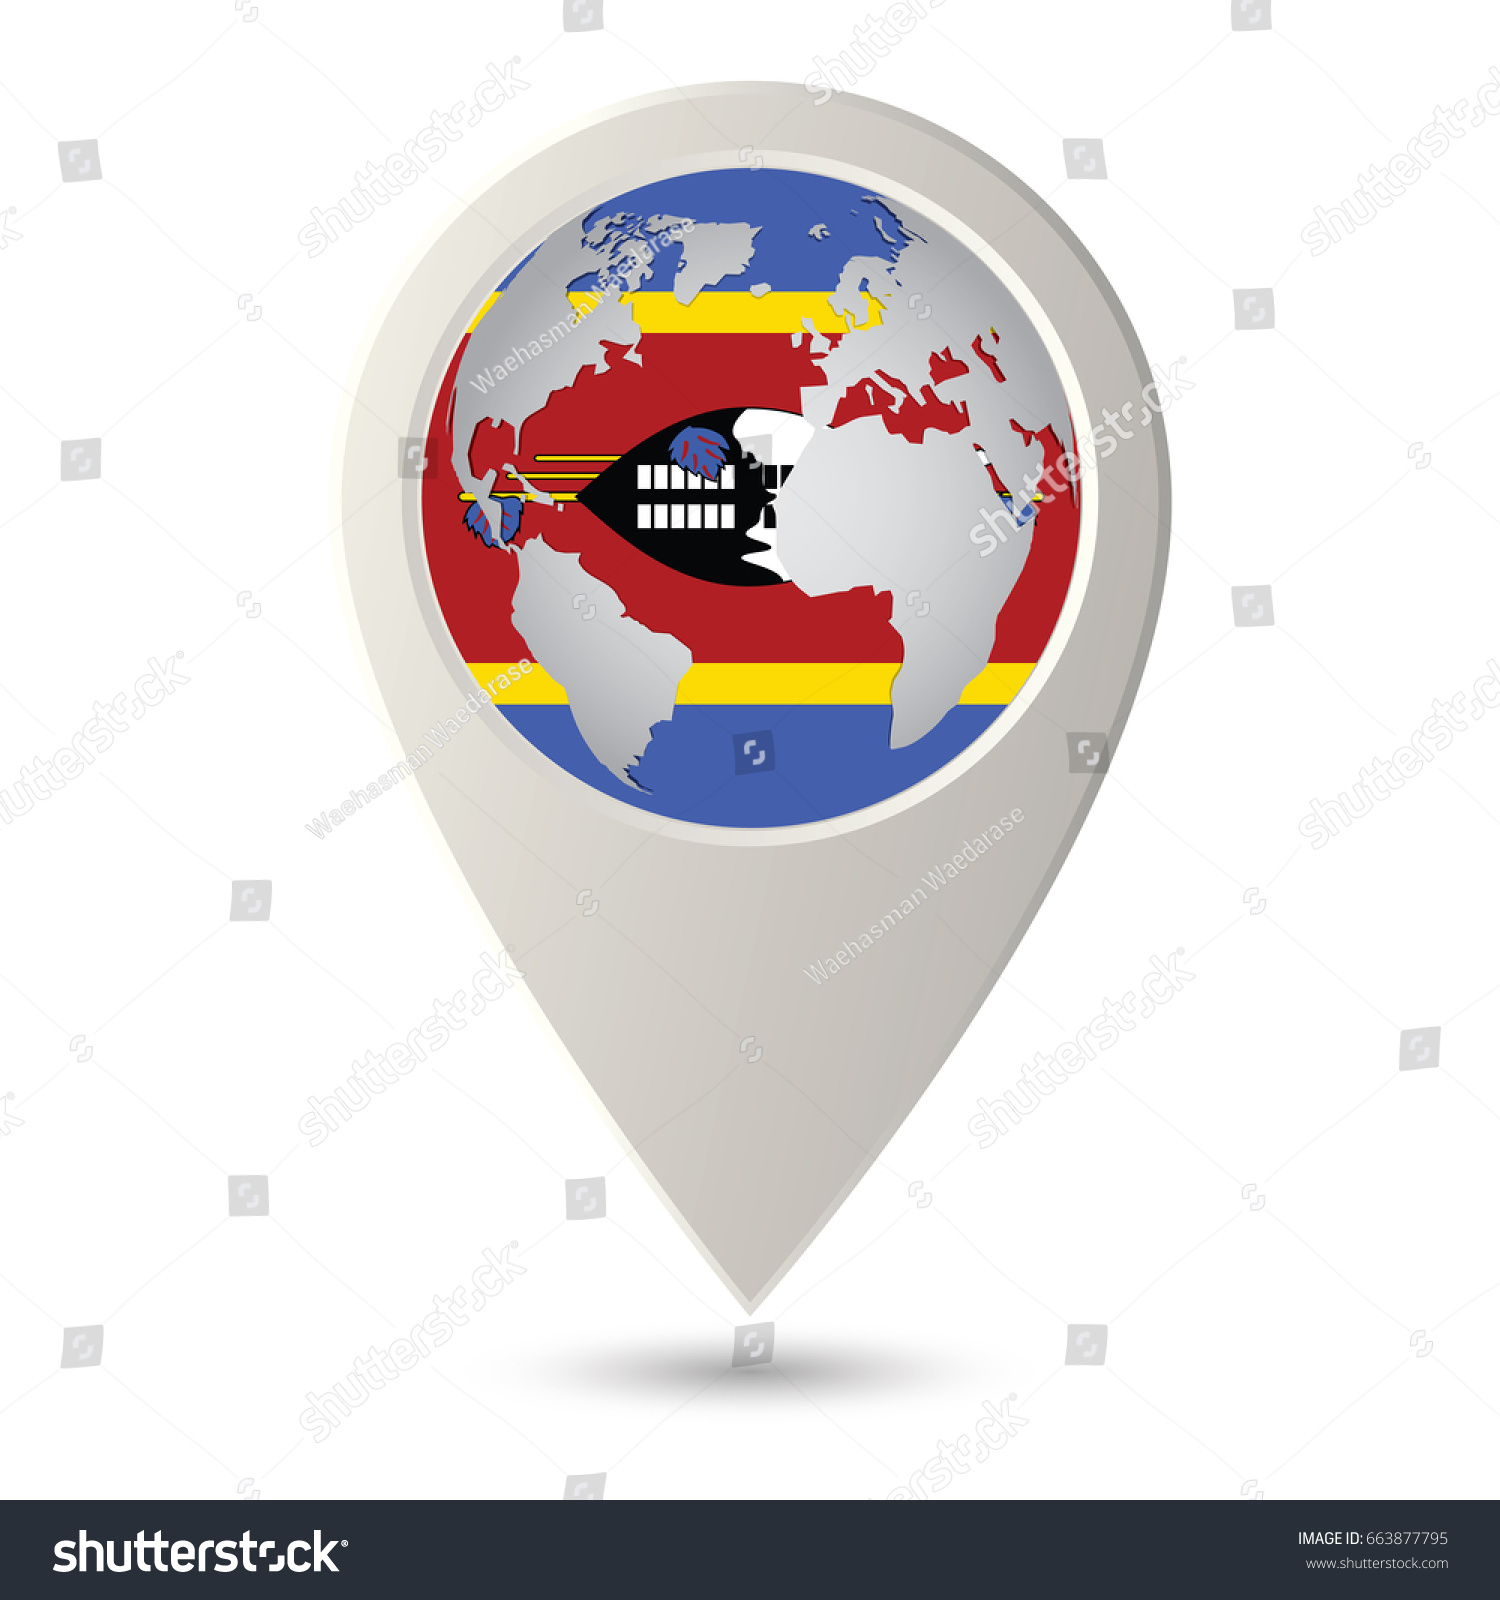 Swaziland Flag Location Map Icon Check Stock Vector 663877795